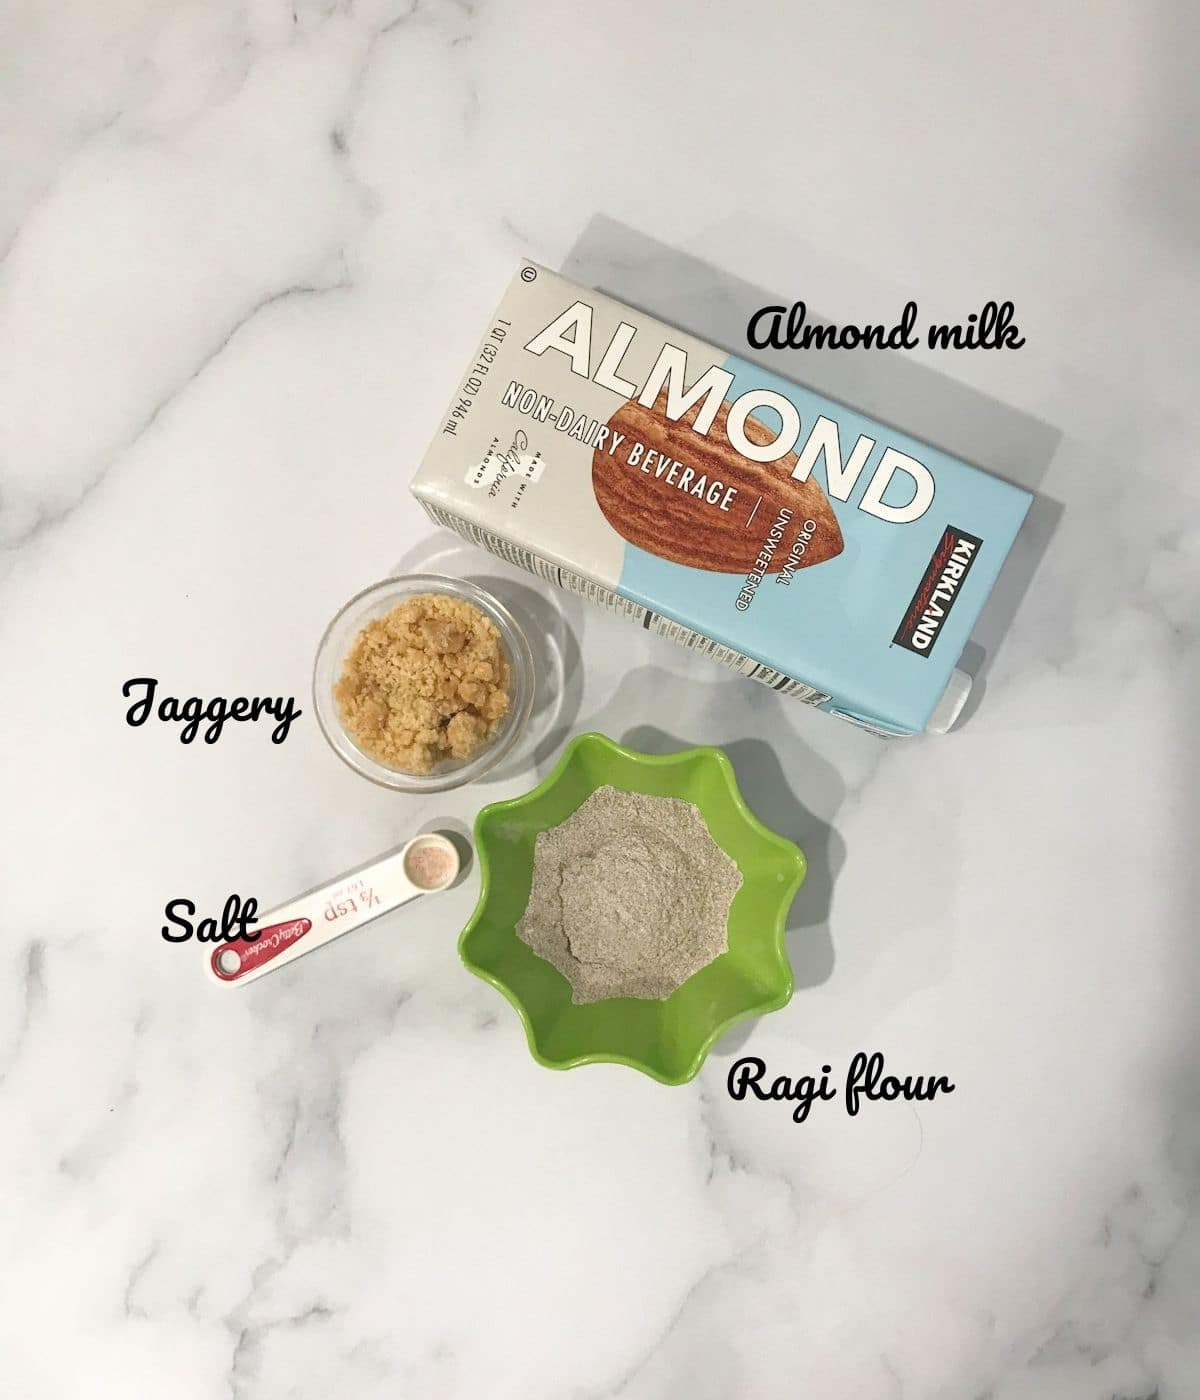 Ragi malt ingredients are placed on the counter top